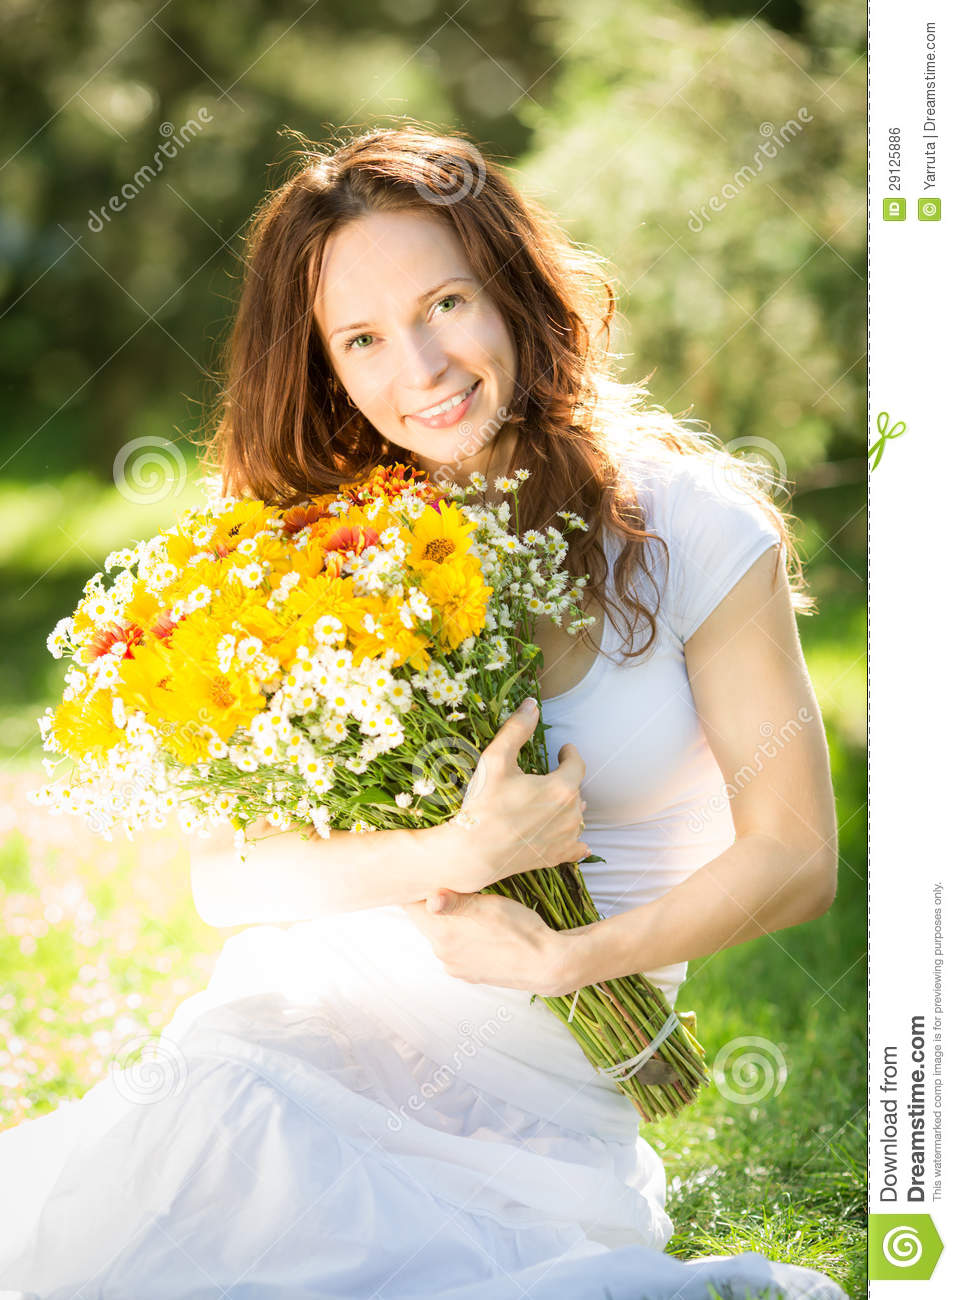 Woman Holding Bouquet Of Flowers Stock Photo - Image: 29125886